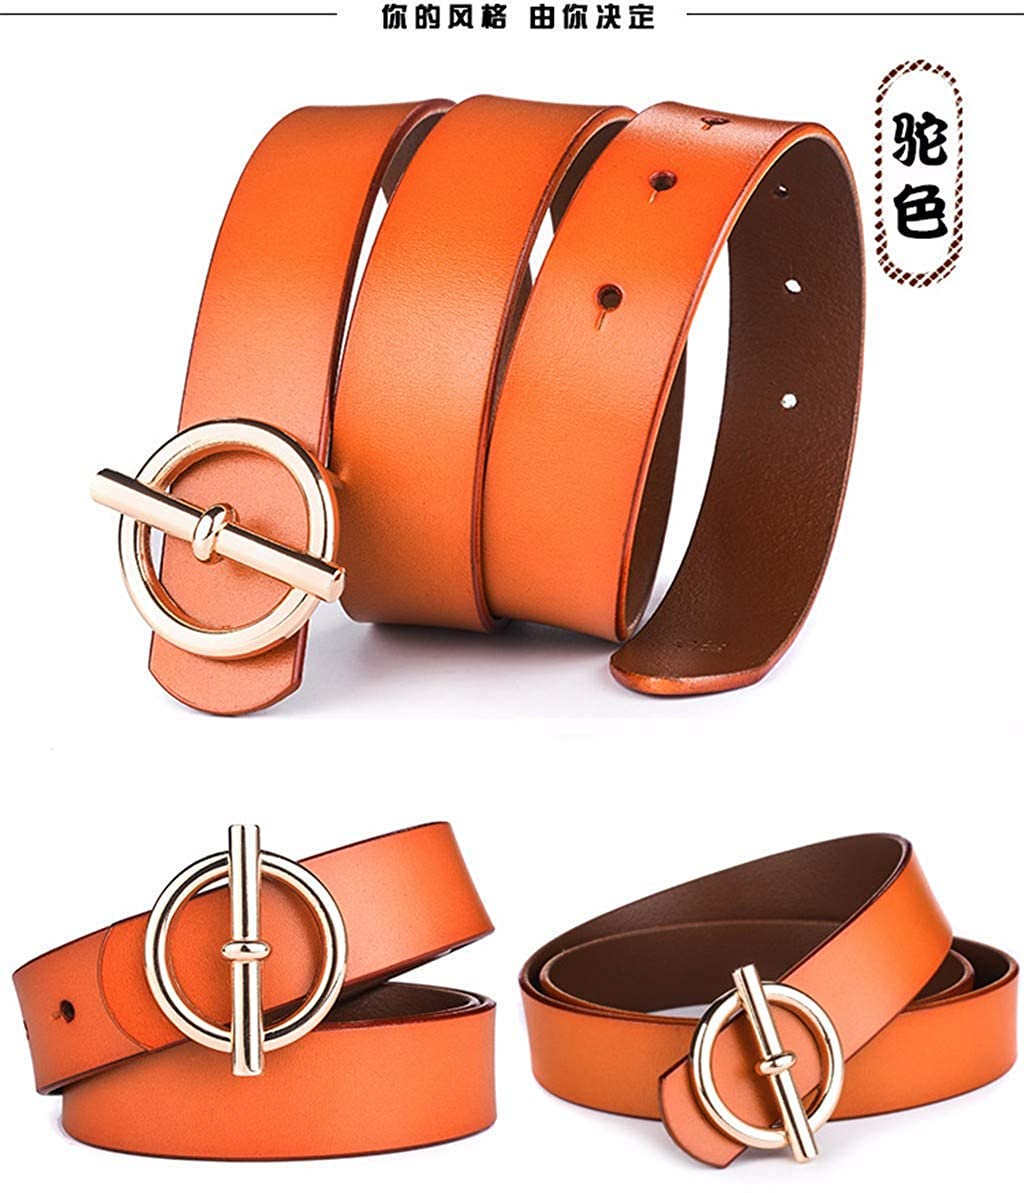 smooth leather belt. fashion Leather leather leather leather